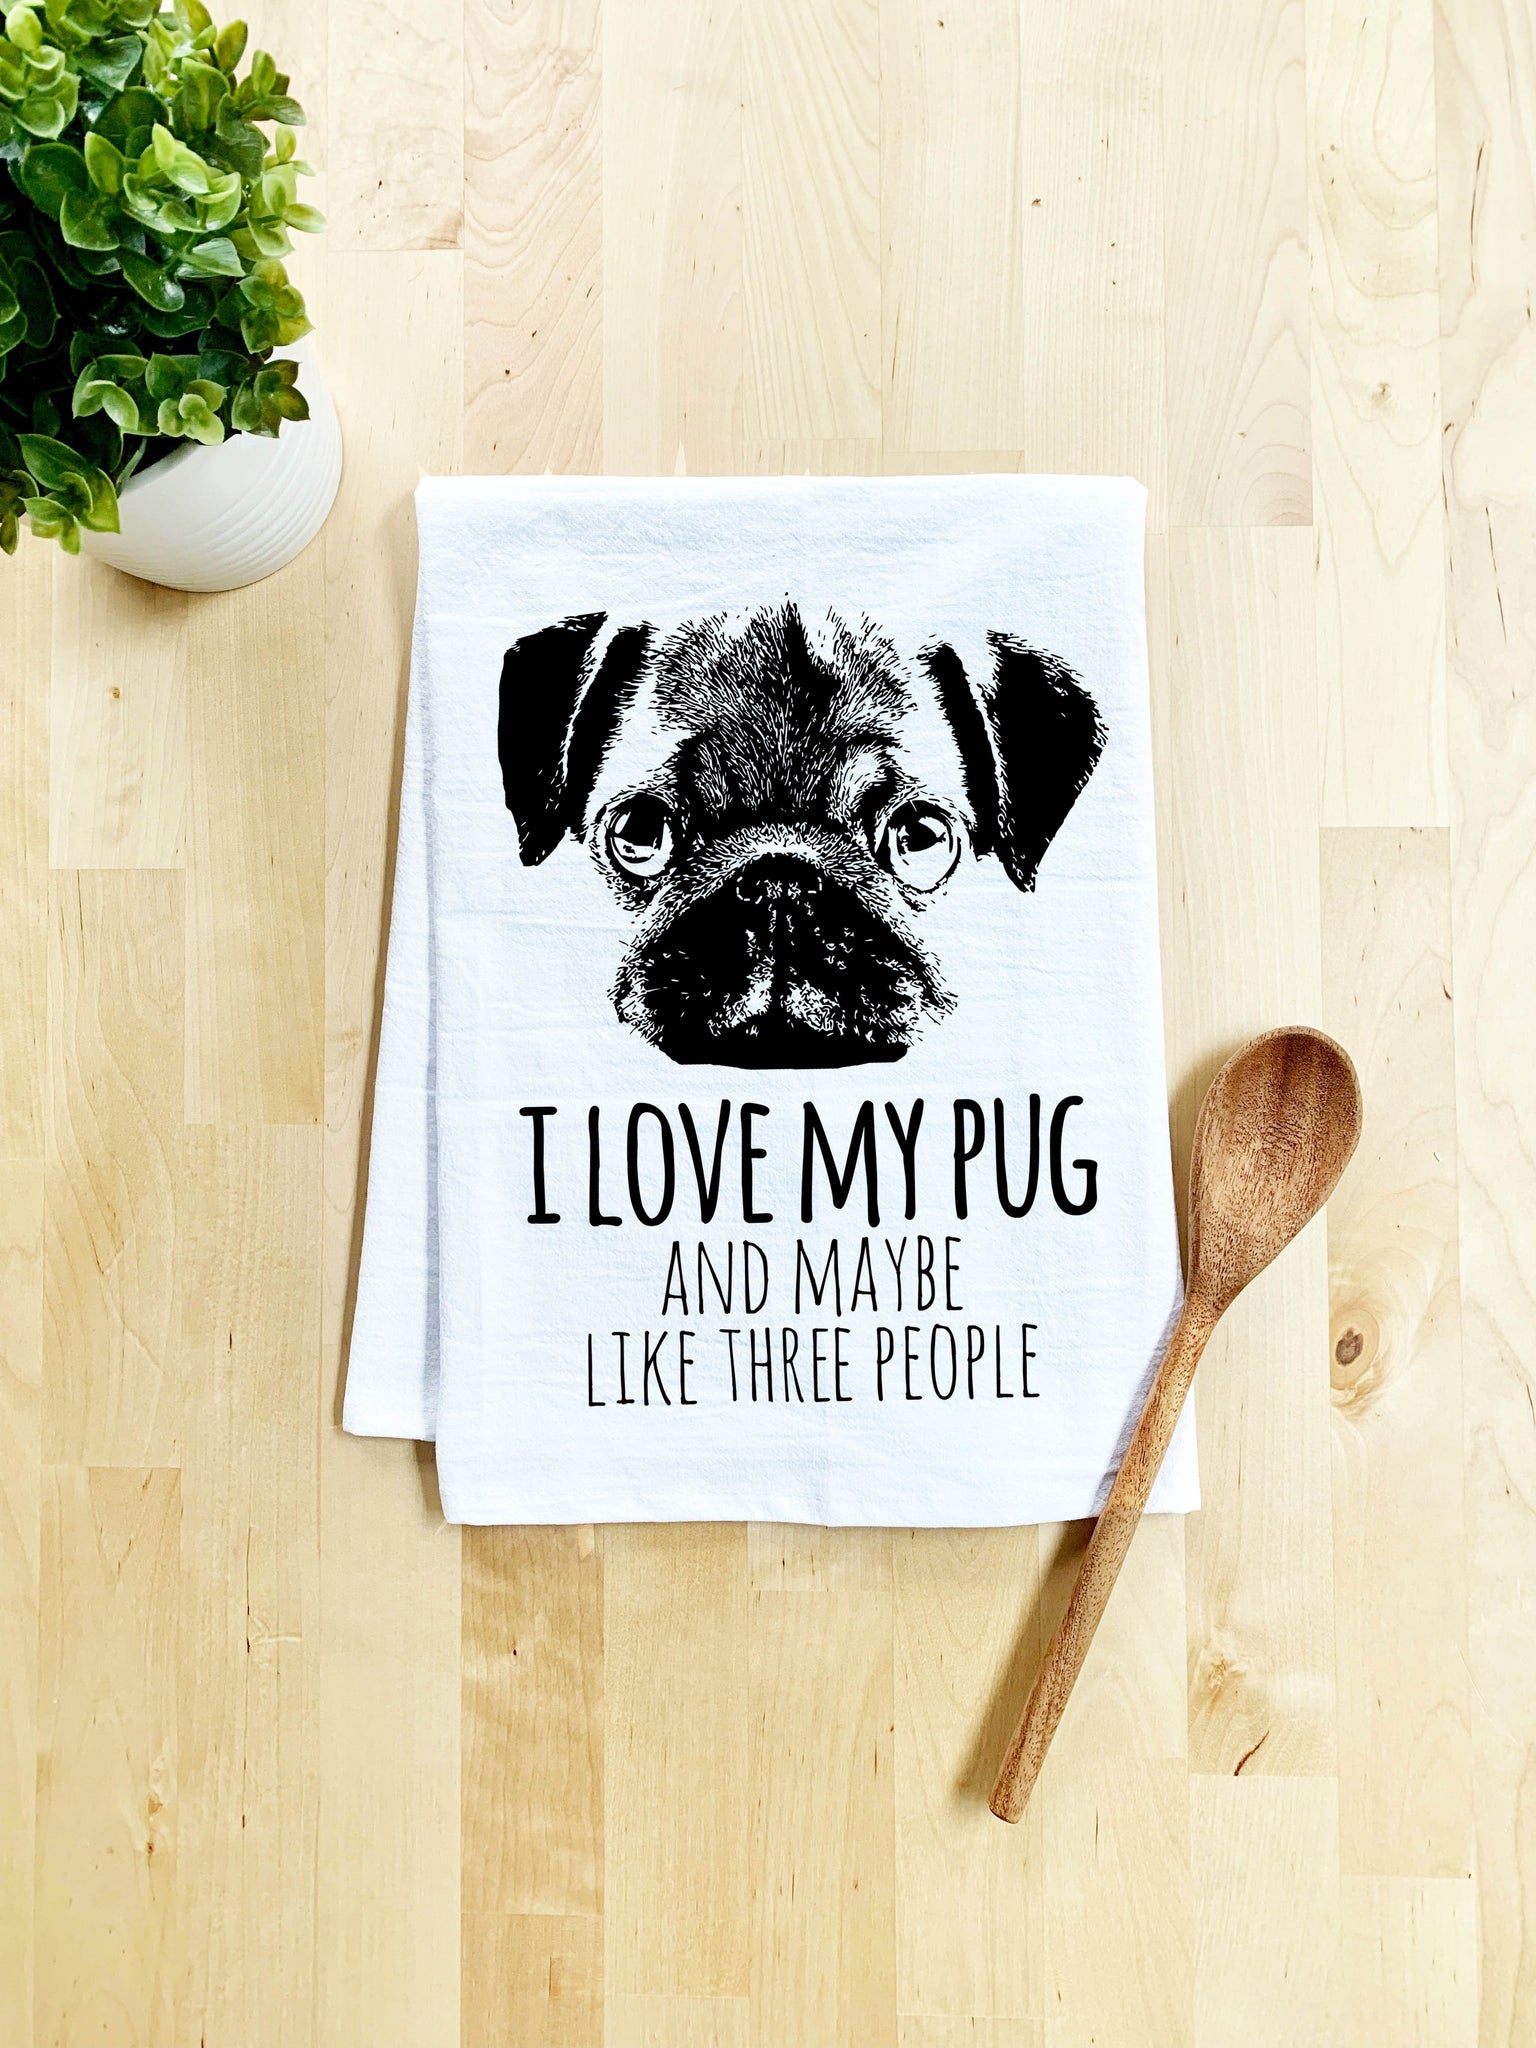 I Love My Pug and Maybe Like Three People (Dog) Dish Towel - White Or Gray - MoonlightMakers